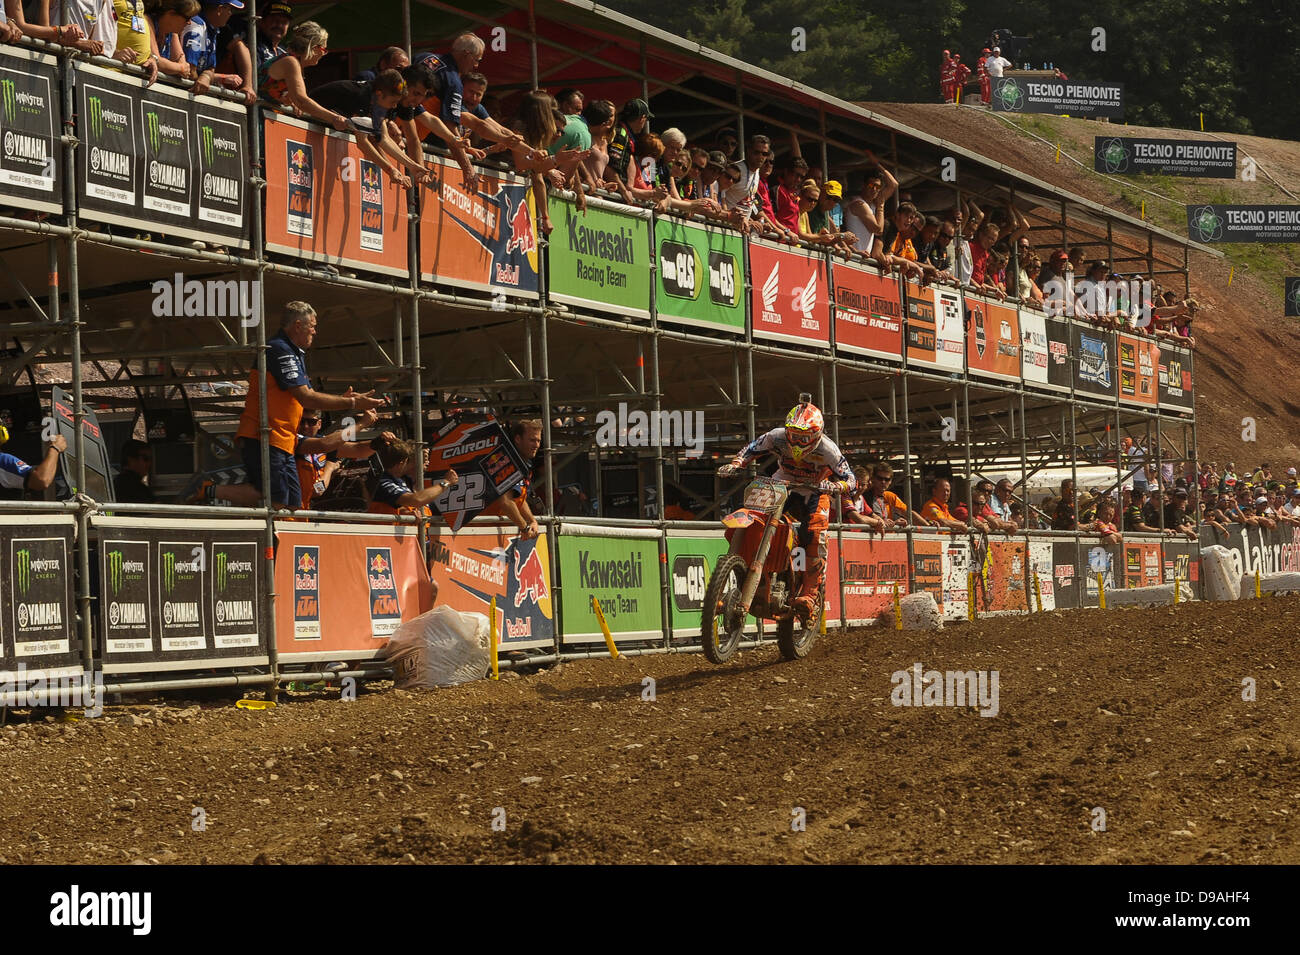 Maggiora, Italy. 16th June, 2013. Number 222 Antonio Cairoli during the MX1 World Motocross Championships from Maggiora. - Stock Image